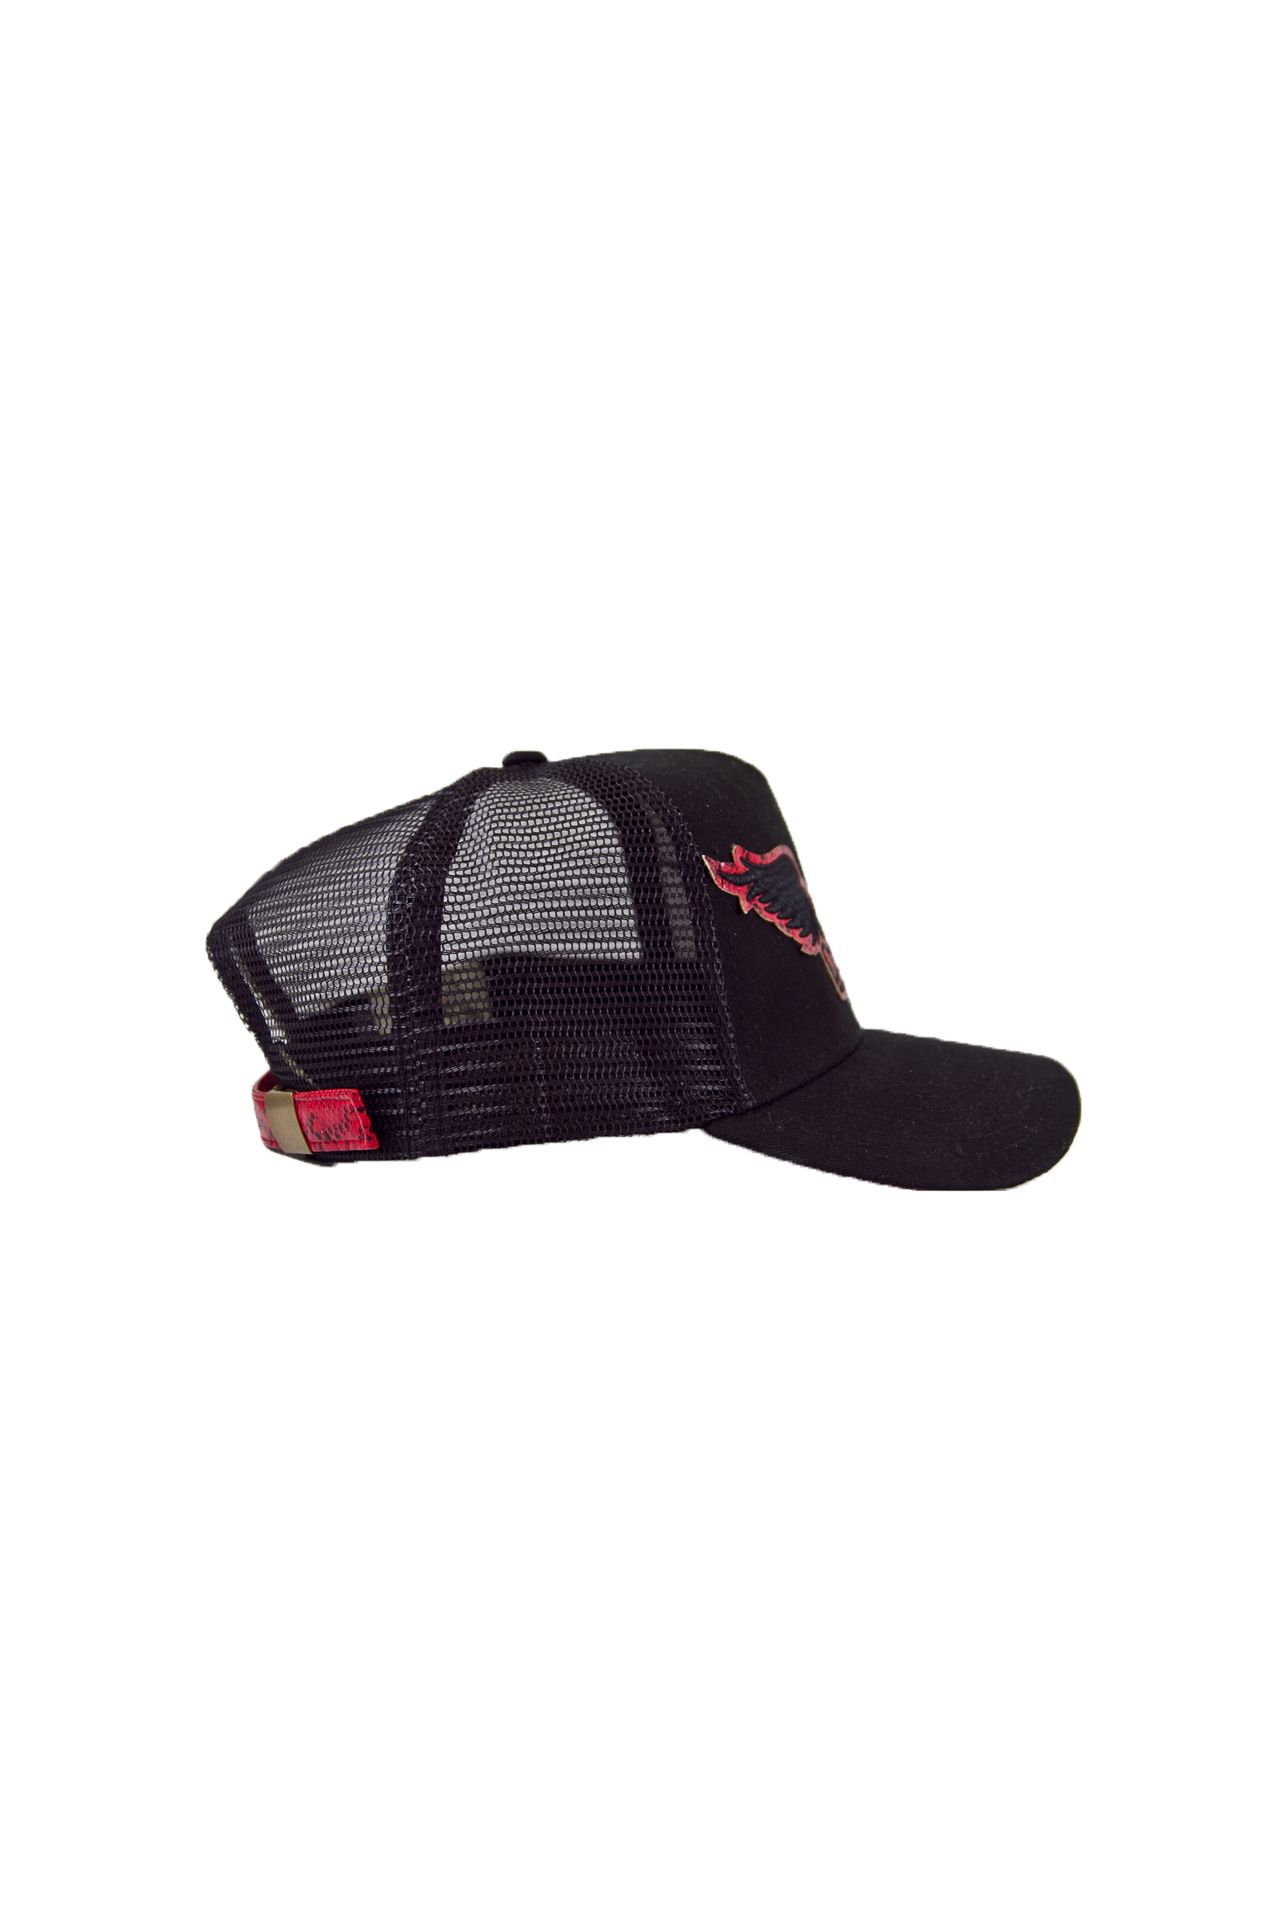 BLACK TWILL CAP WITH RED UNDER VISOR